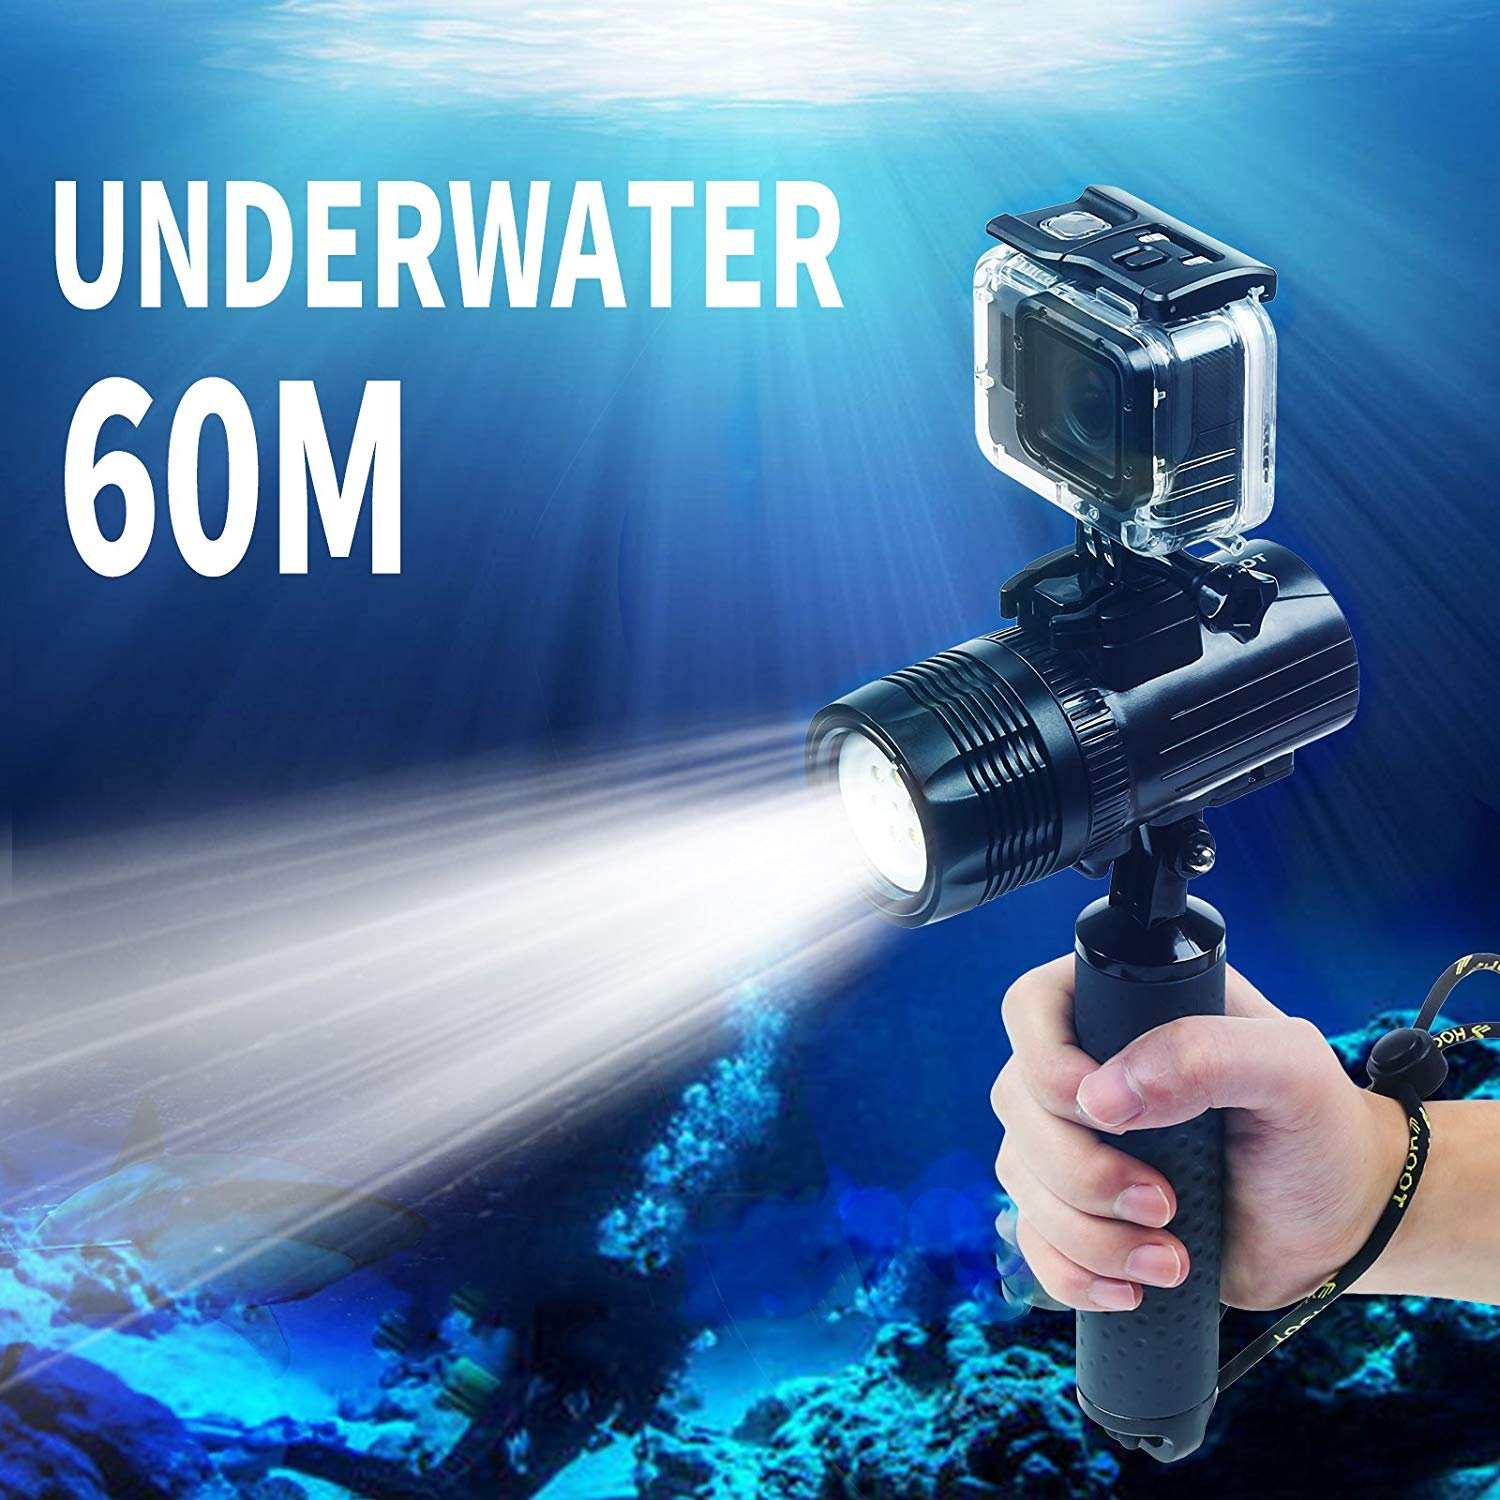 SHOOT Handheld Flashlights Torch GoPro Hero 7 Black Silver White/6/5/4/3+/3, Waterproof Digital Camera, 1000LM, Waterproof 60m, CREE XM-L R3, 120° Wide, 2000mAh Rechargeable Battery Float Bar Diving, Cycling, Night Fishing Must Have Accessories